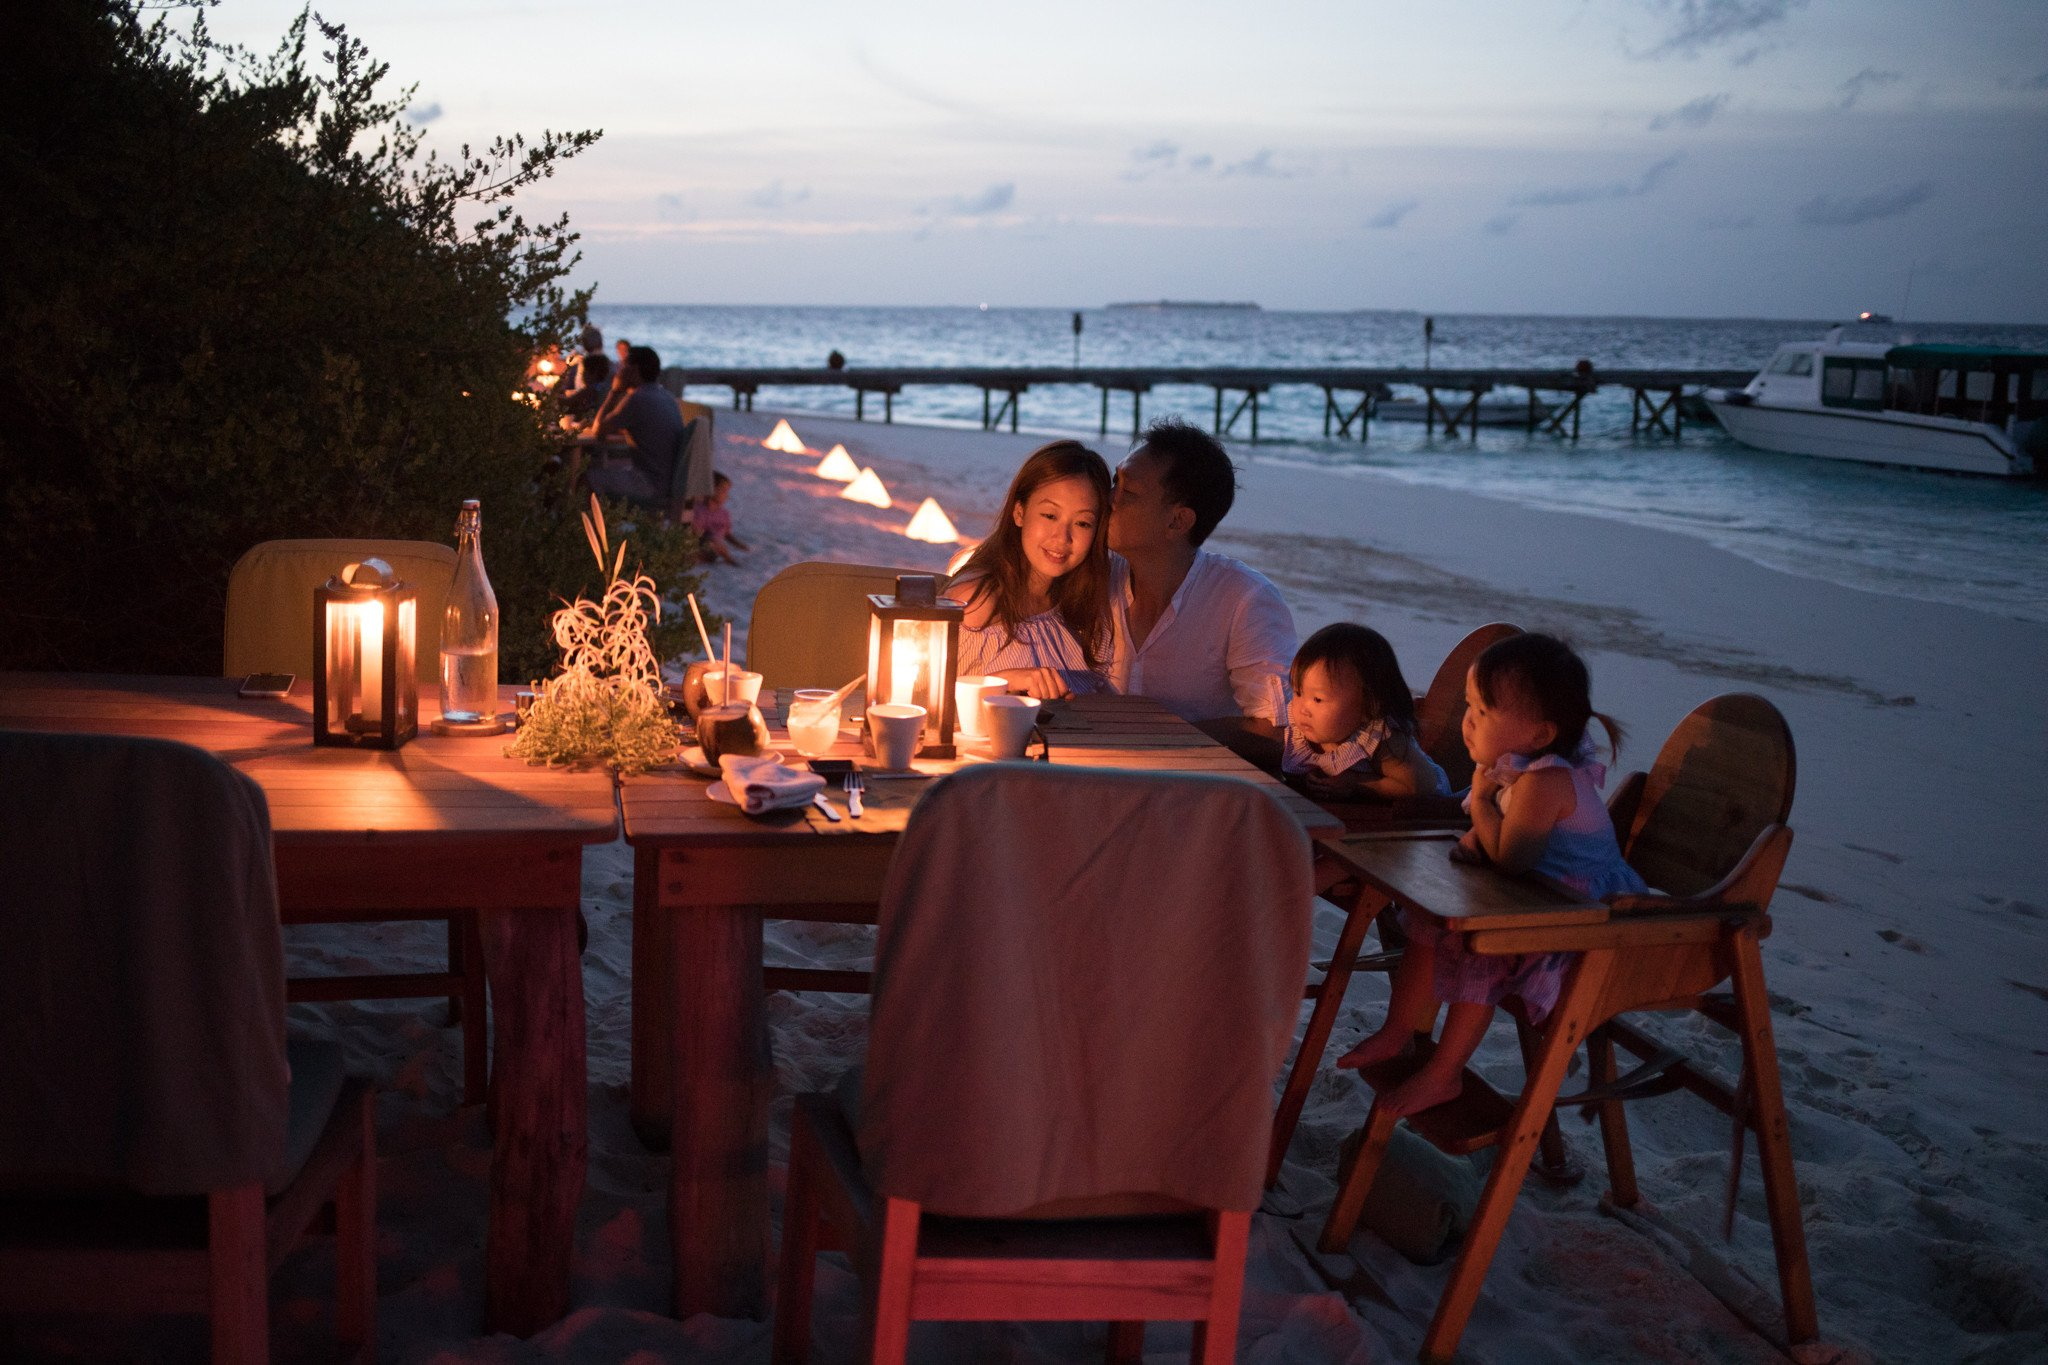 I am a fussy eater and i have to say, every meal here is a delightful gastronomical experience. Fantastic service with different menus and fresh juices everyday. The sunset views, sound of waves lapping the shore and glimmering night sky add to the experience.